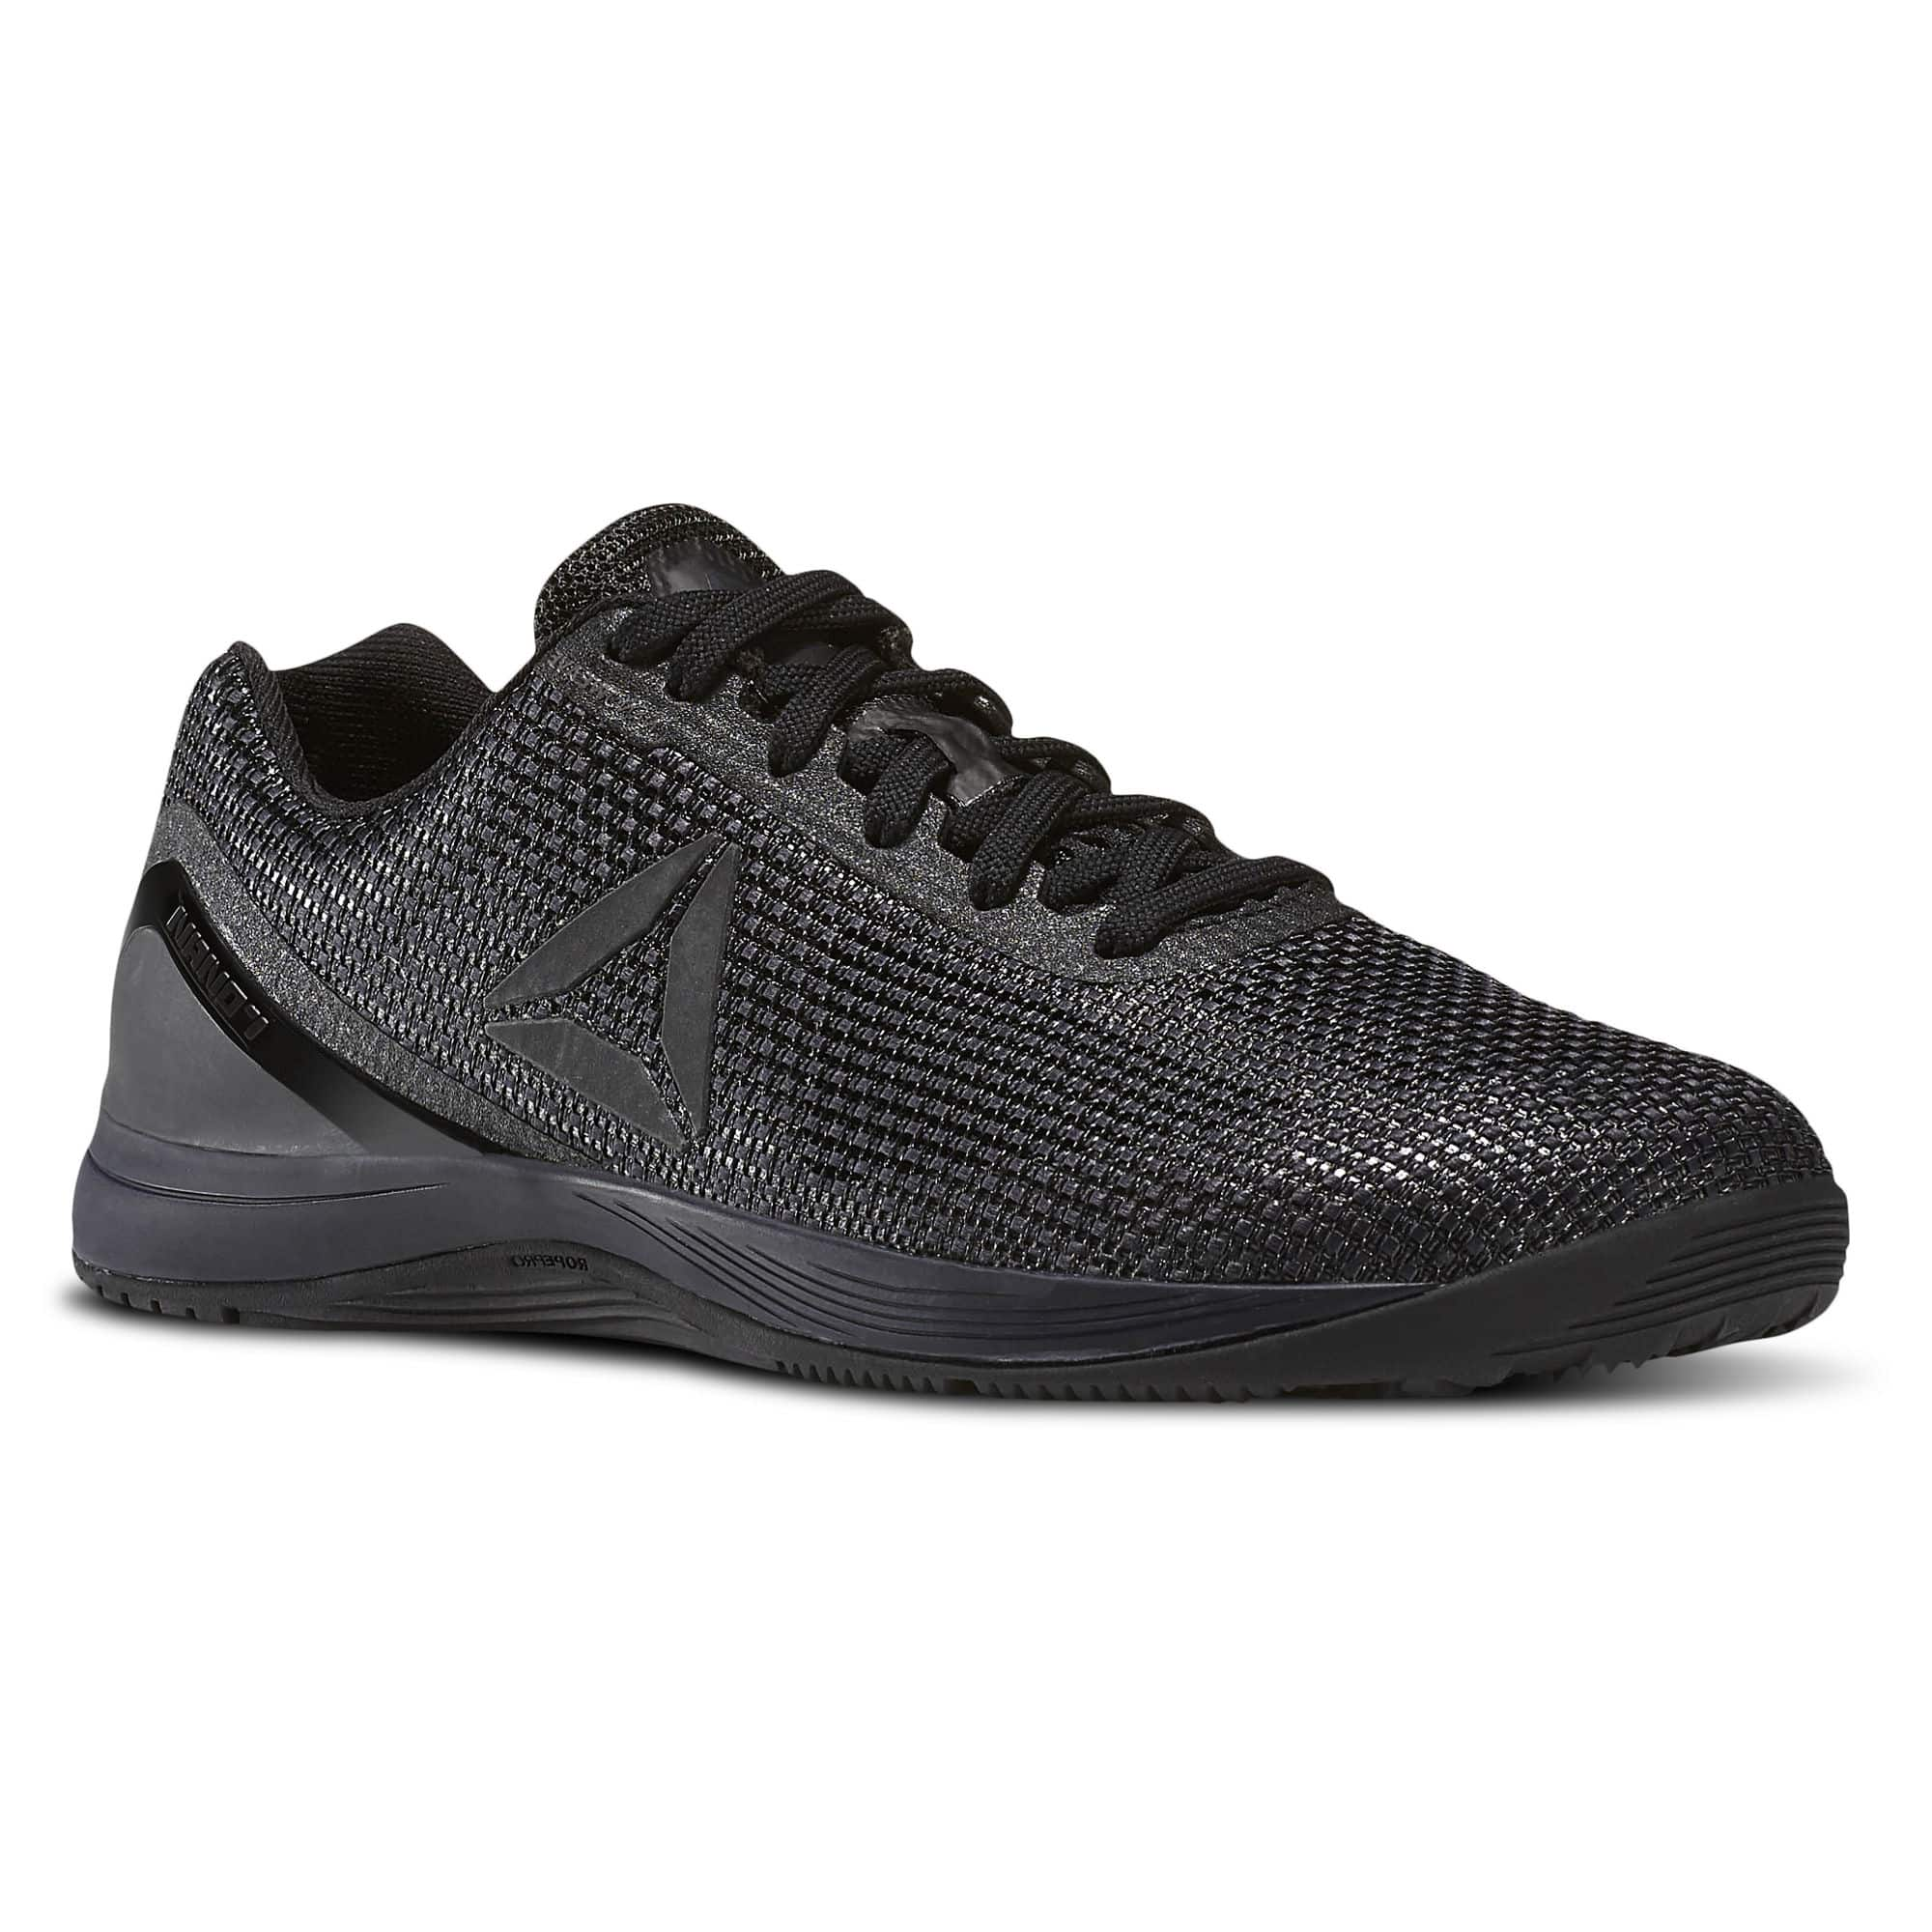 b50144d0fa3 Men s. Reebok CrossFit Nano 7 Weave Training Shoes  44.99. Deal Image  Deal  Image. Deal Image